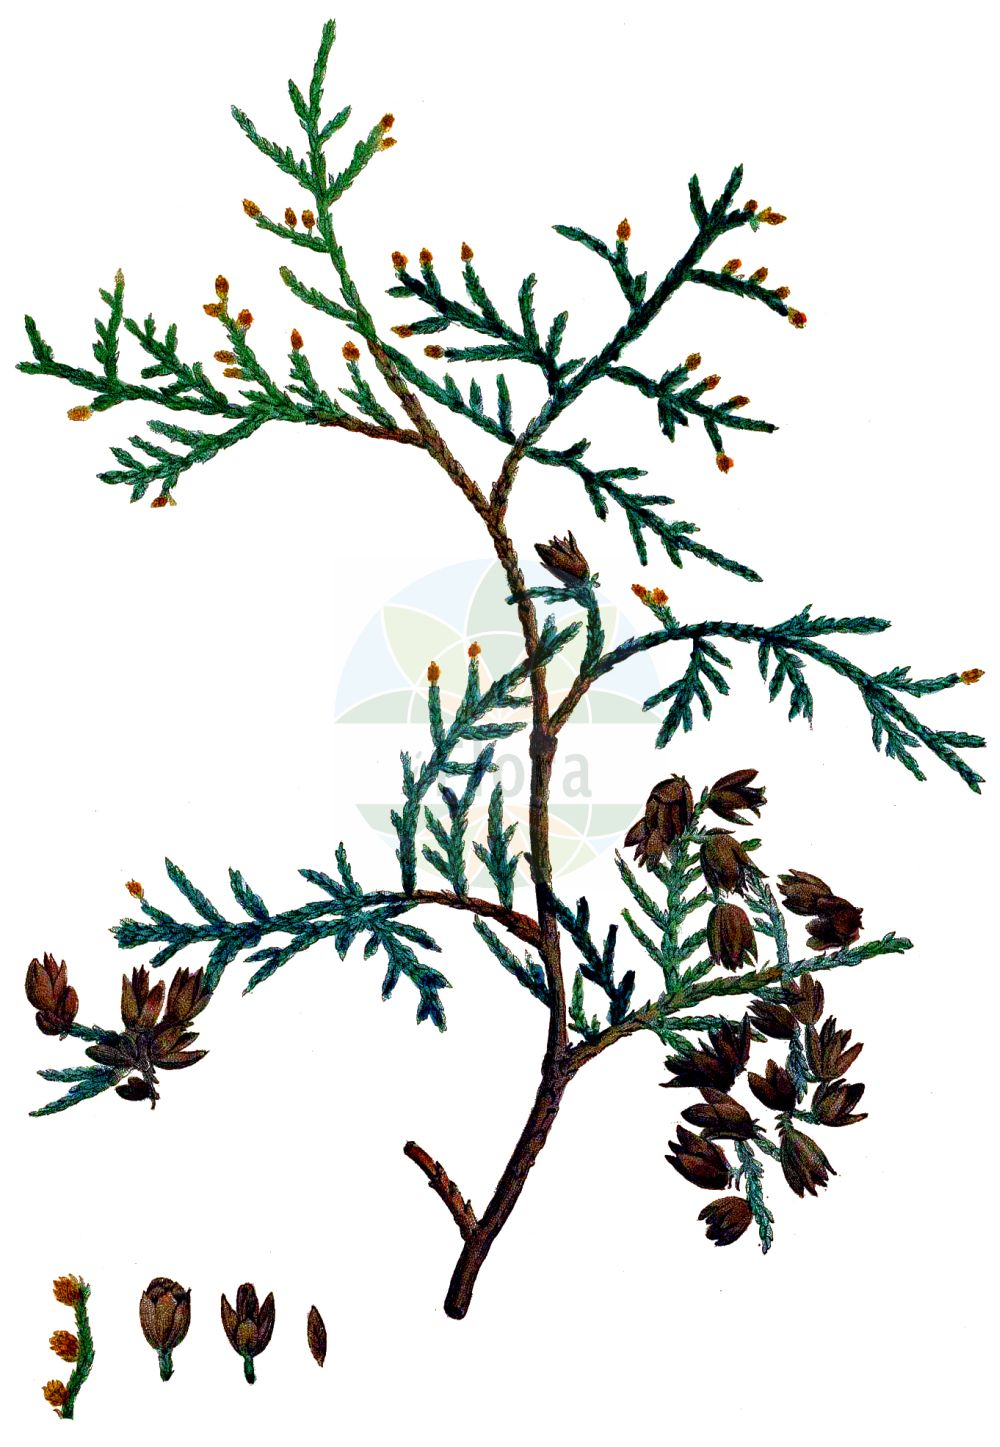 Historische Abbildung von Thuja occidentalis (Abendlaendischer Lebensbaum - Northern White-cedar). Das Bild zeigt Blatt, Bluete, Frucht und Same. ---- Historical Drawing of Thuja occidentalis (Abendlaendischer Lebensbaum - Northern White-cedar).The image is showing leaf, flower, fruit and seed.(Thuja occidentalis,Abendlaendischer Lebensbaum,Northern White-cedar,Thuja occidentalis,Abendlaendischer Lebensbaum,Northern White-cedar,American Arbor-vitae,Arborvitae,Thuja,Lebensbaum,Cedar,Cupressaceae,Zypressengewaechse,Cypress family,Blatt,Bluete,Frucht,Same,leaf,flower,fruit,seed,Duhamel du Monceau (1755-1768))